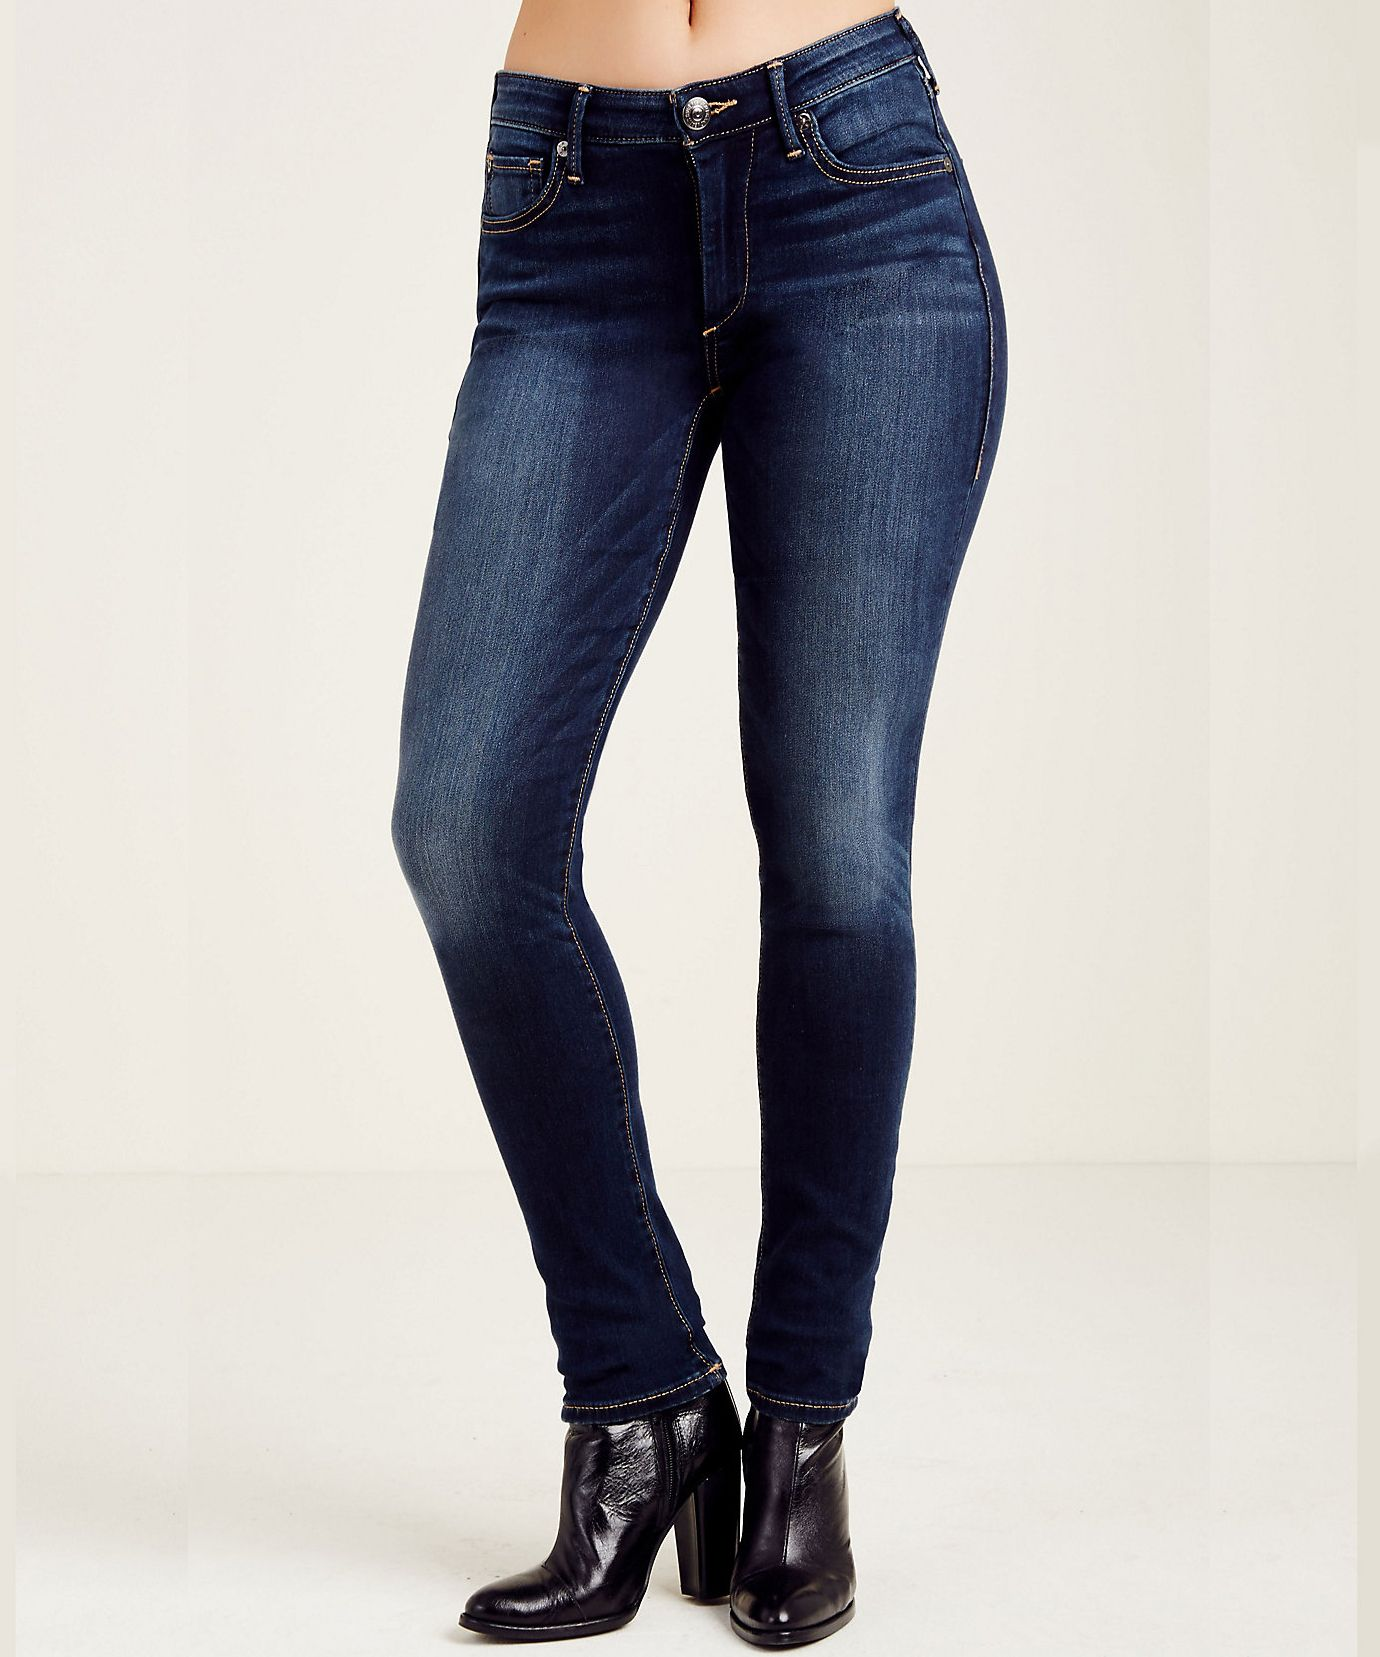 f690f8199e5f6 A Guide to the Best Jeans for Women with Wide Hips - True Religion from  InStyle.com